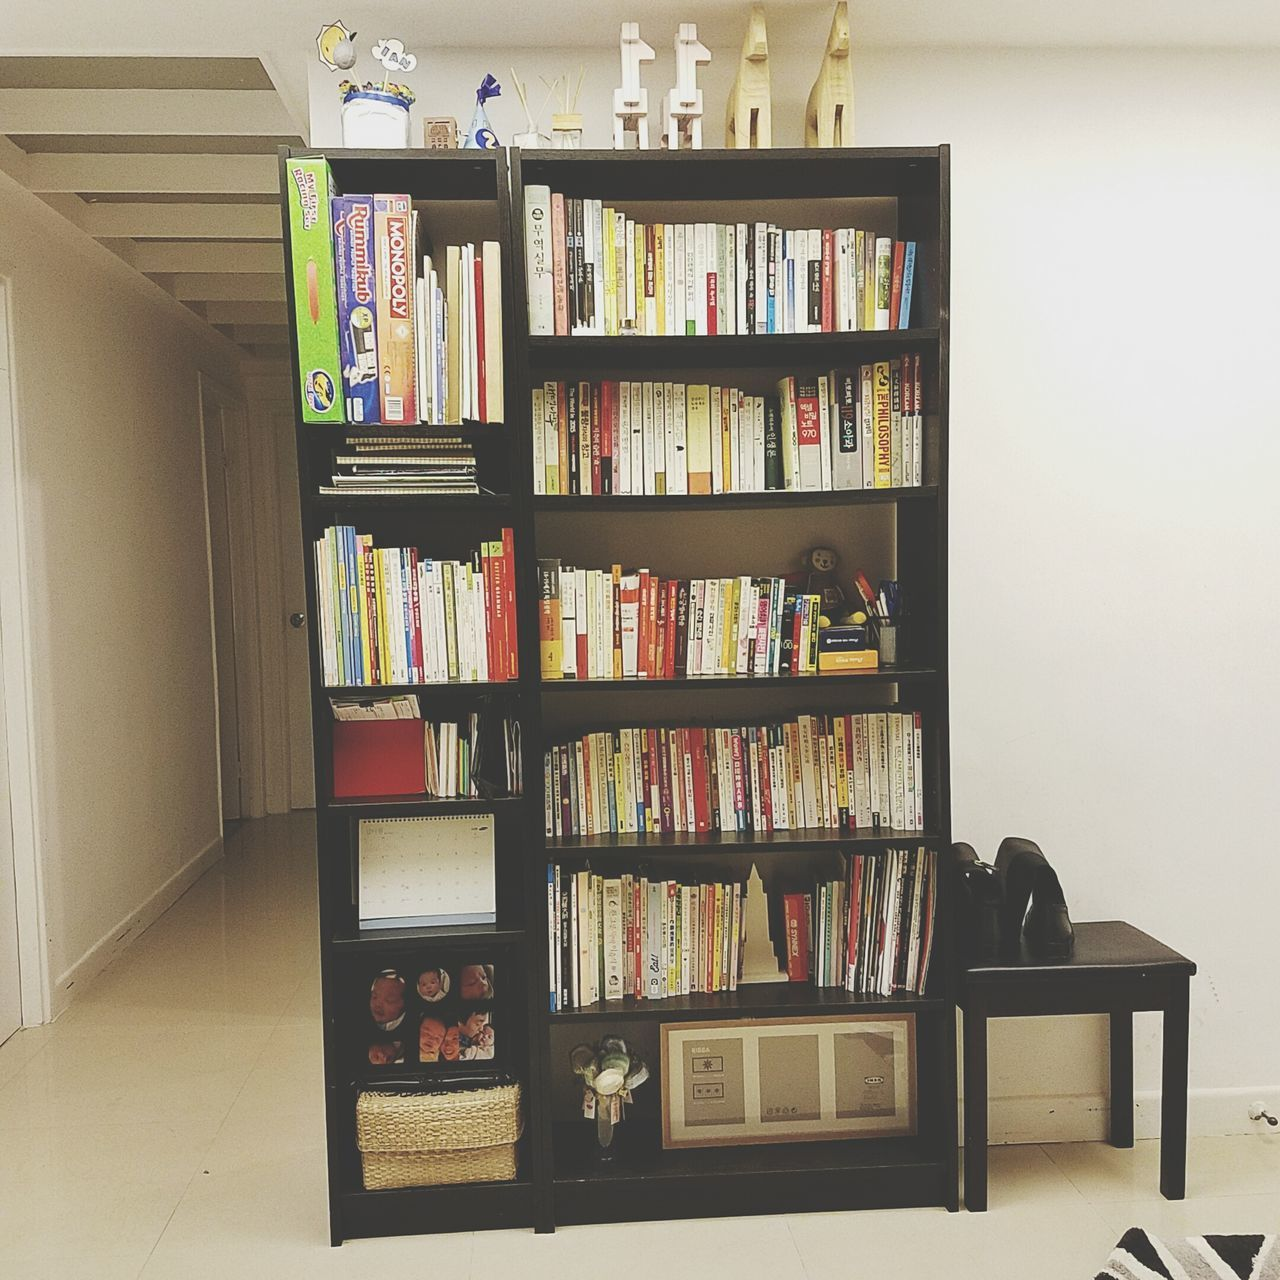 I love doing this. Booklover Bookshelf Tidy Room Bookaholic Arrangement Neat Bookstagram Shelf Book Indoors  No People Large Group Of Objects Library Day